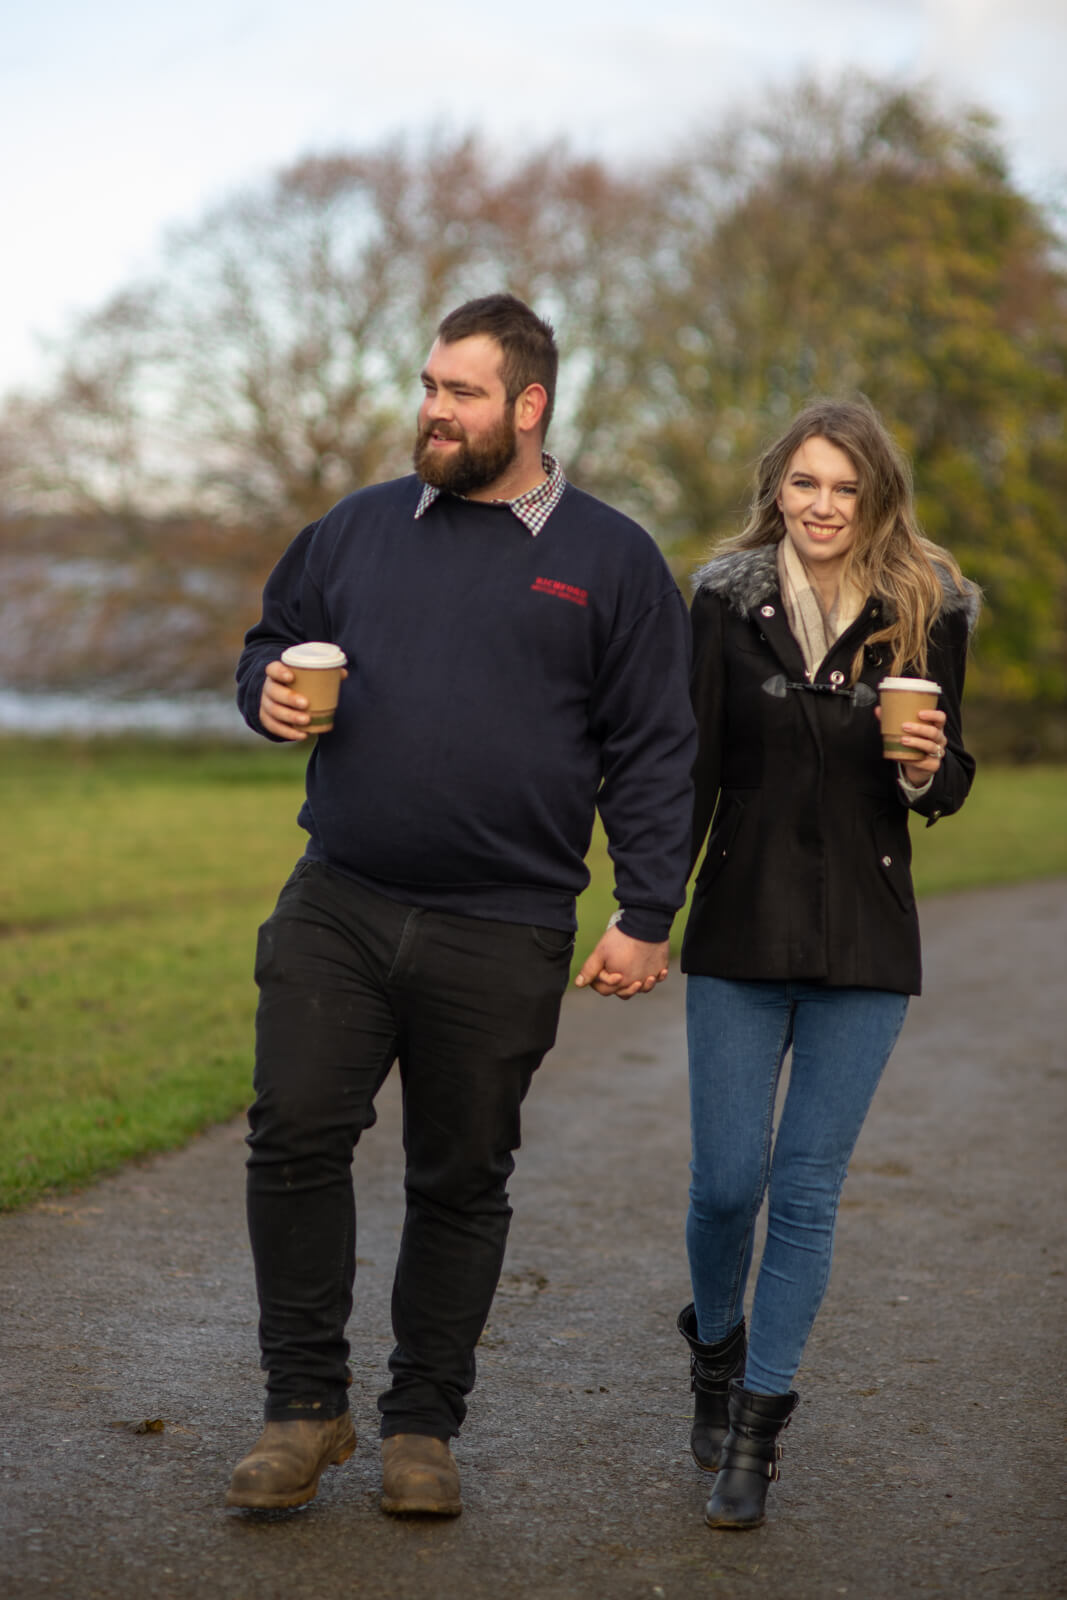 Young couple holding hands and walking with cups of coffee